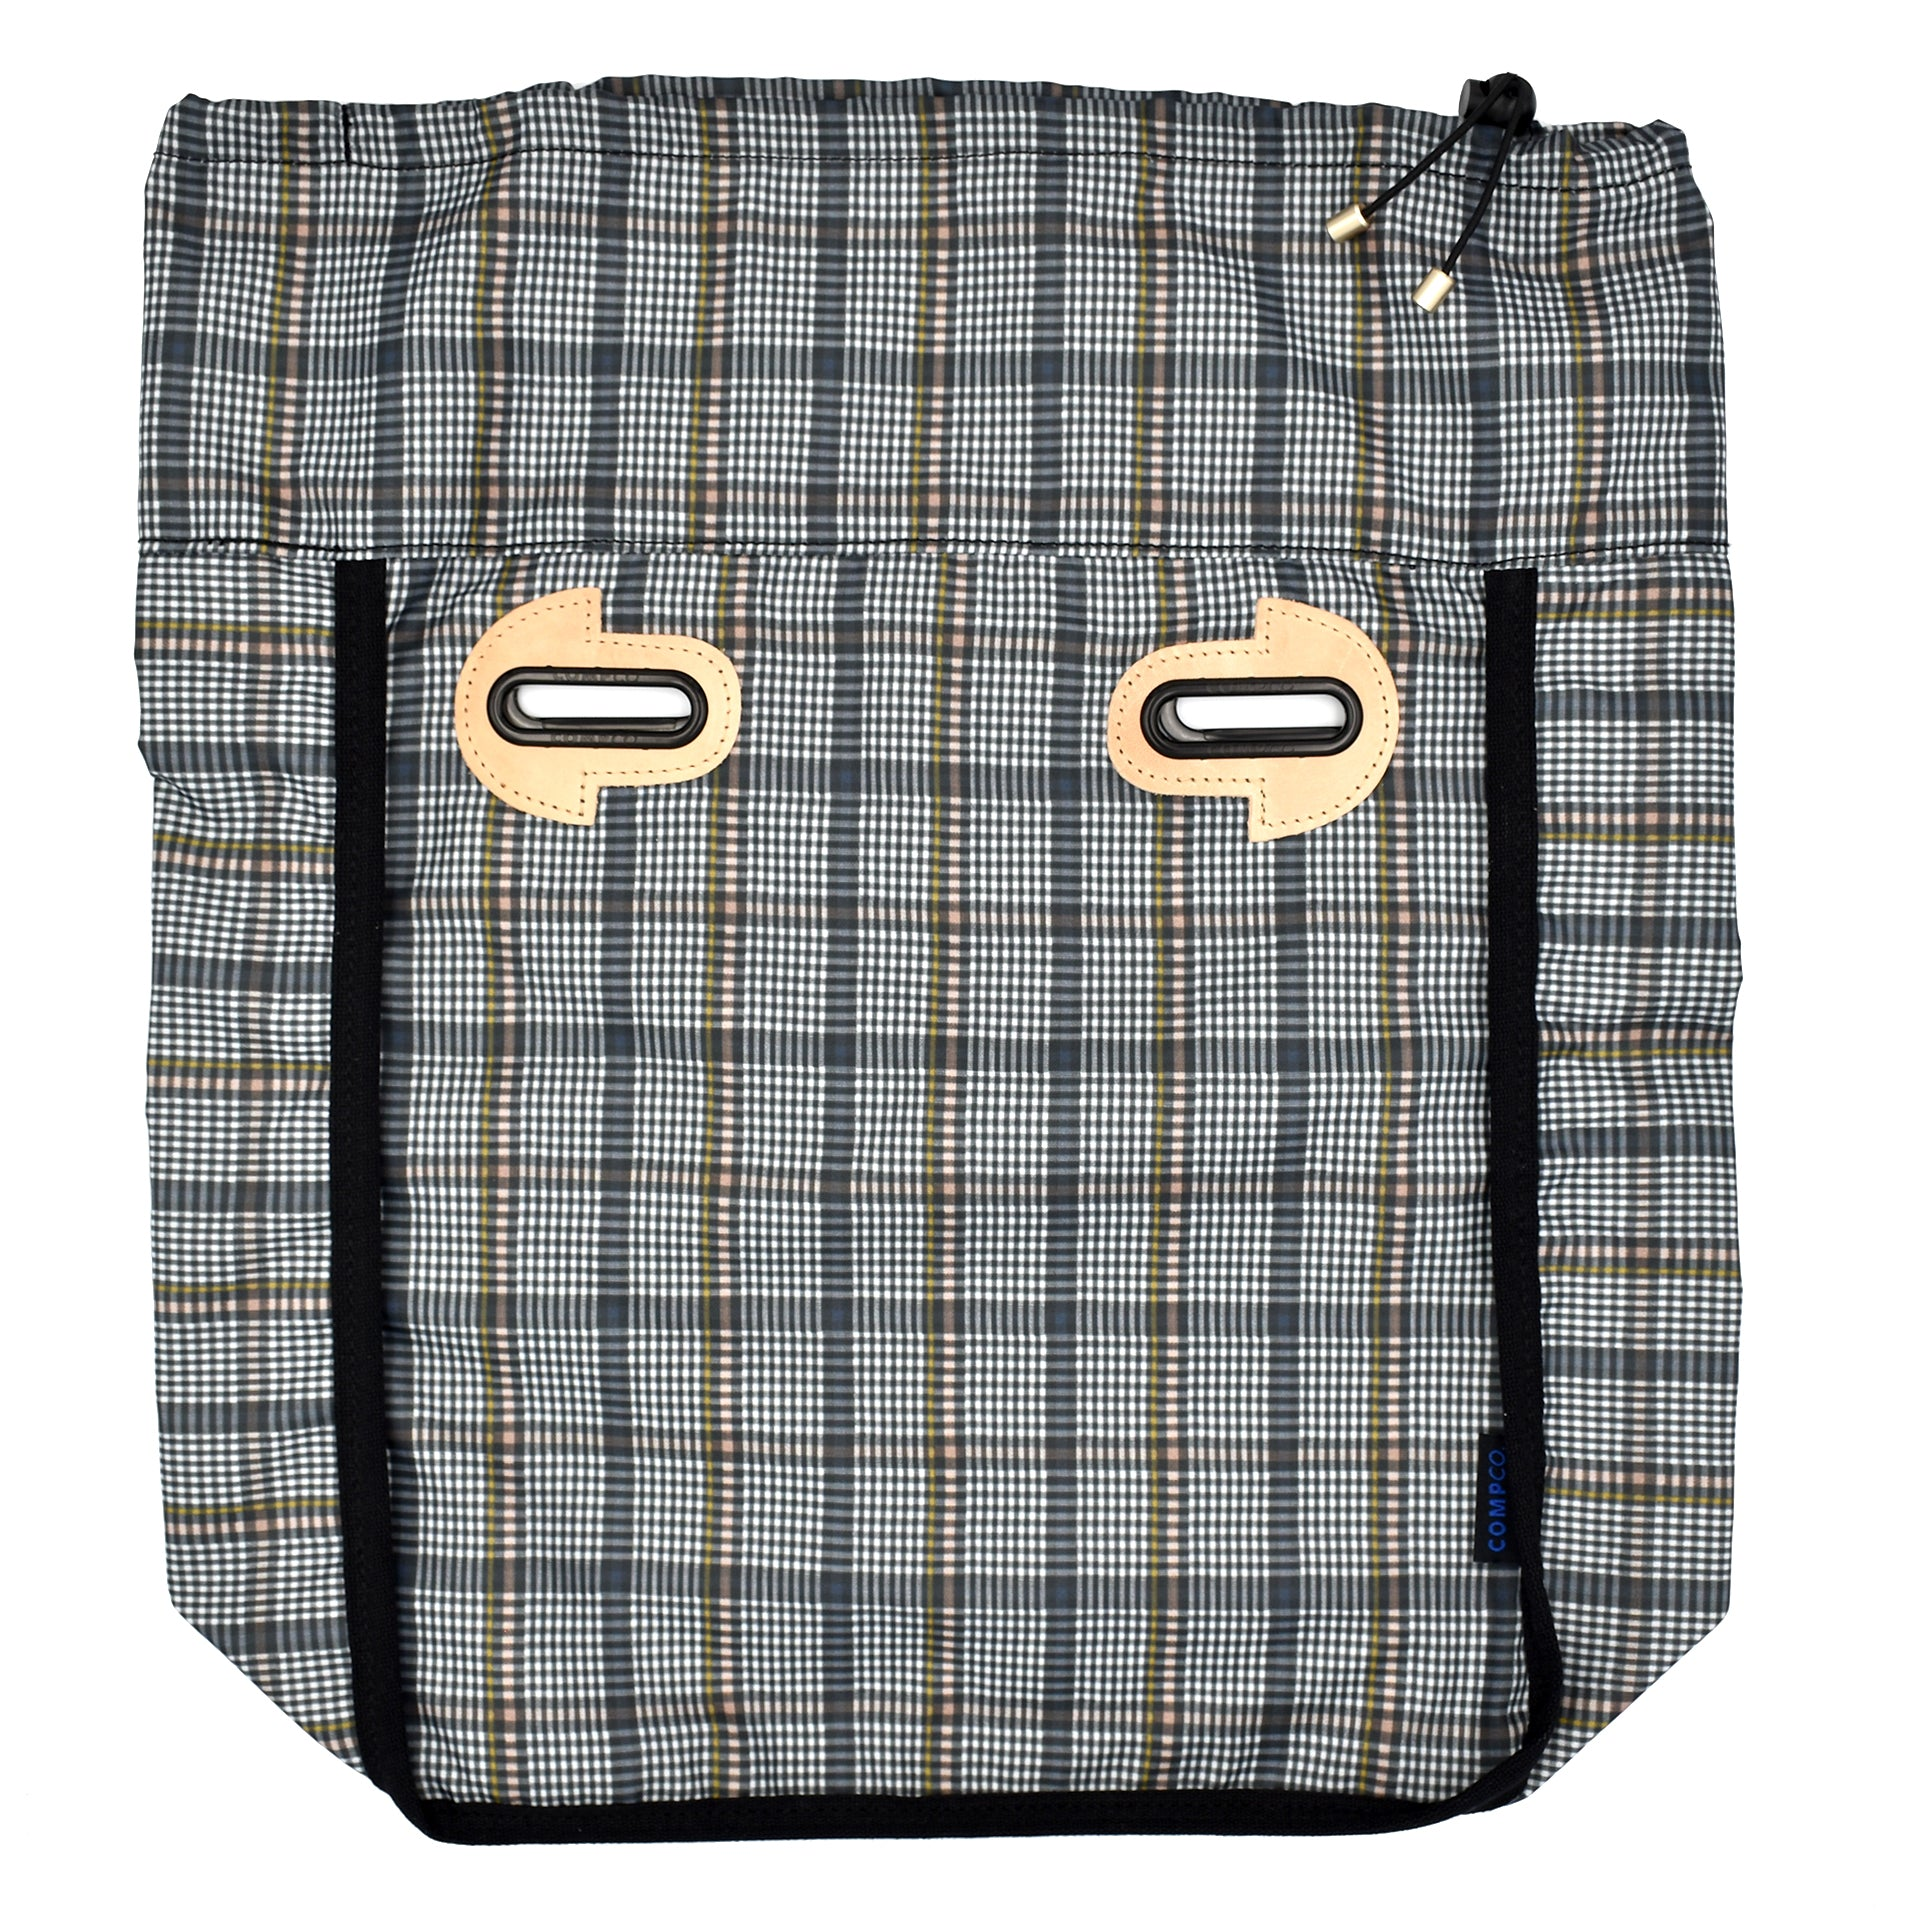 Rad Plaid Tote Cover